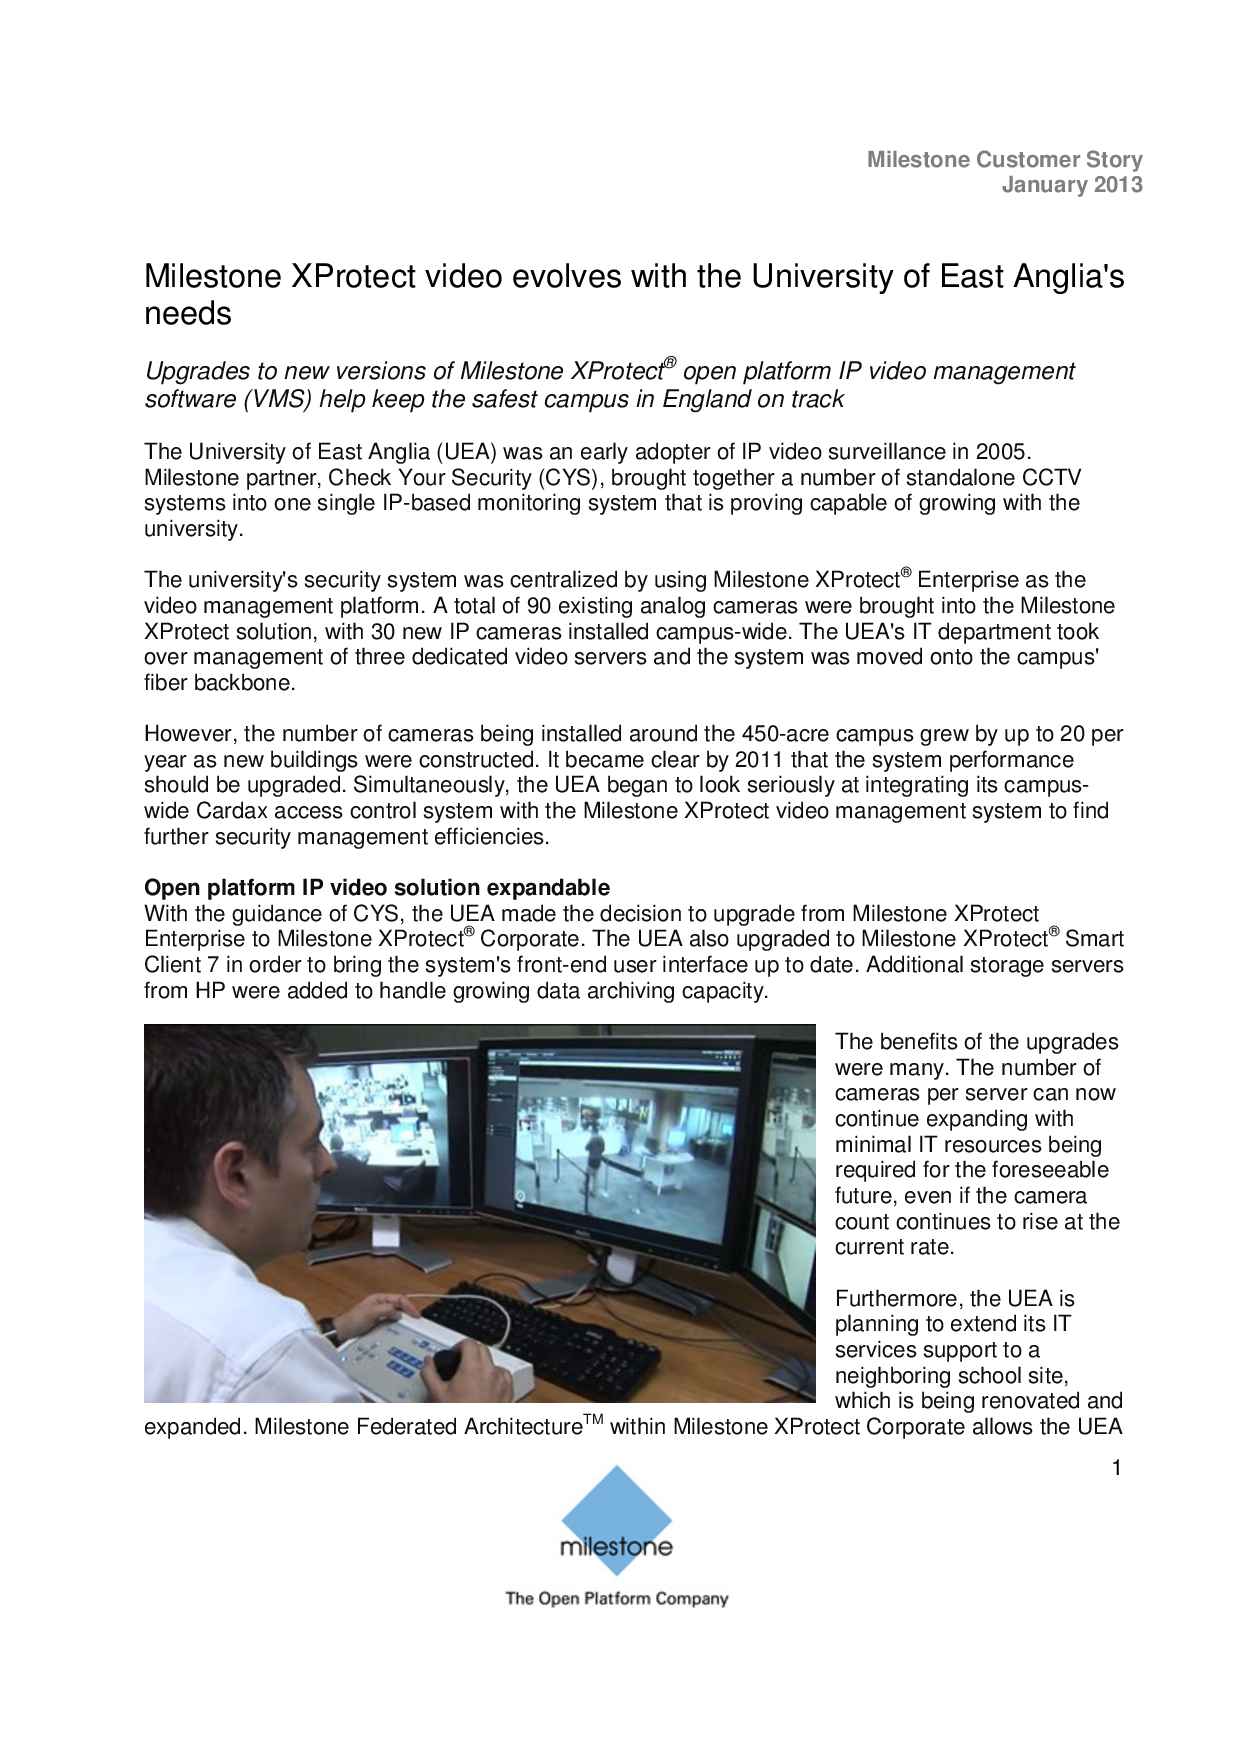 Milestone XProtect video evolves with the University of East